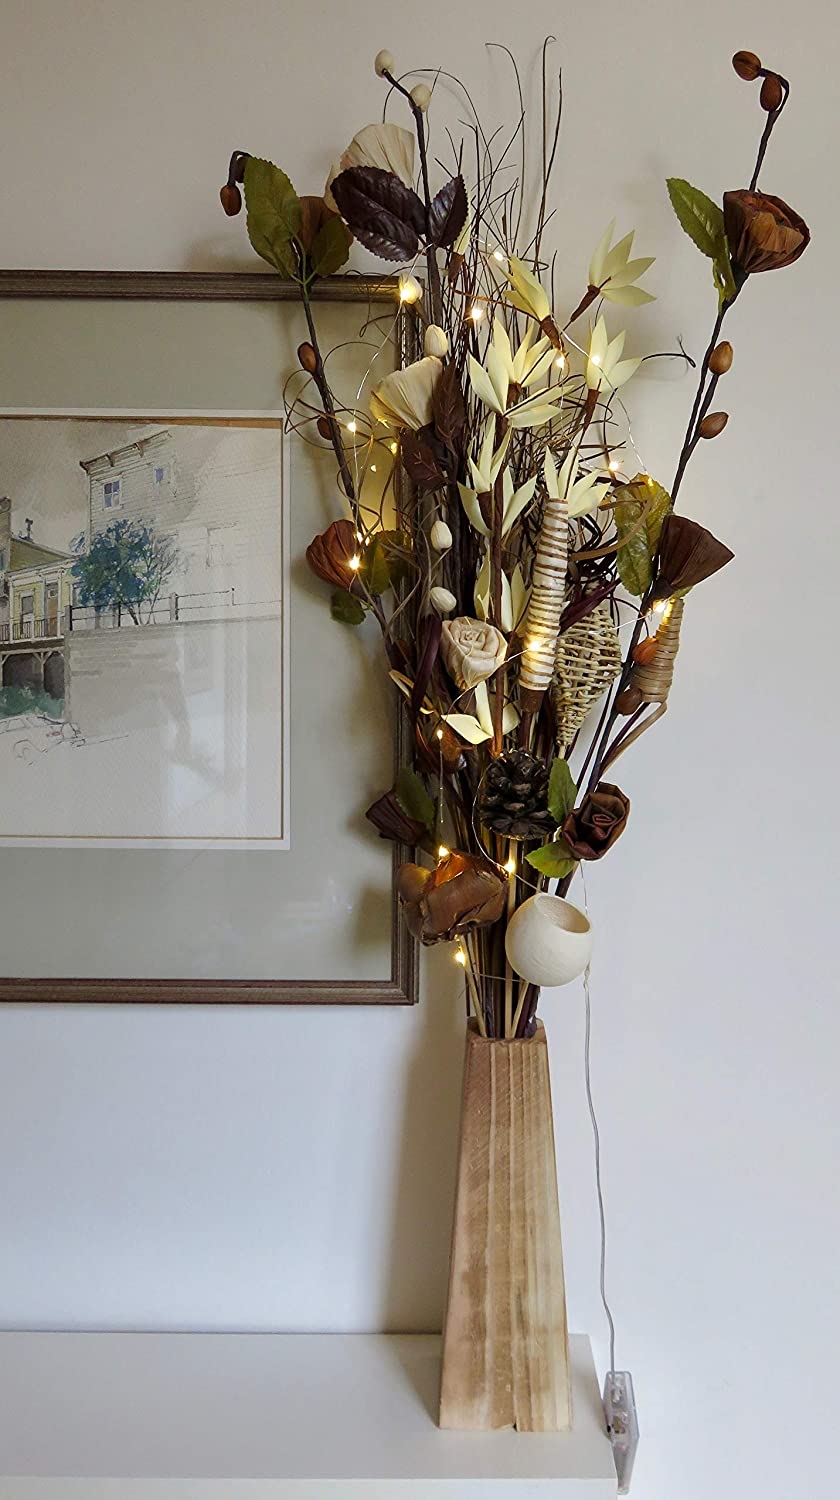 Unique Brown Cream Bouquet Incorporating Maize Recycled Flowers With 20 Led Lights In Wood Vase Amazon Co Uk Kitchen Home